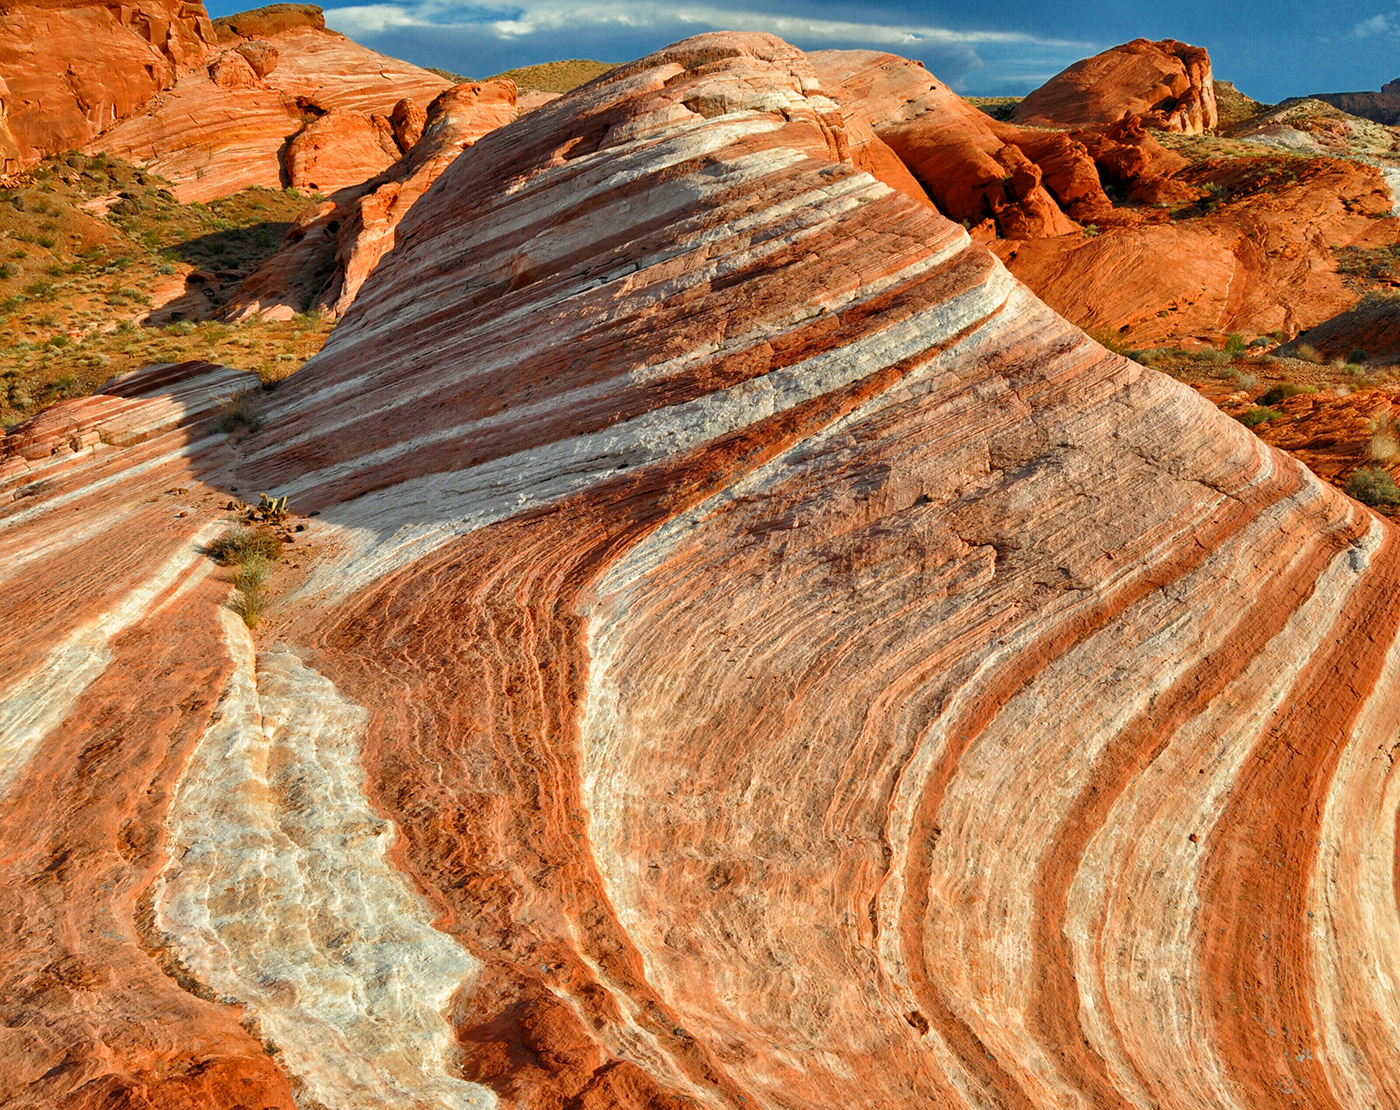 South Wave, 03 Valley of Fire, Arizona/USA   © Marianne Wogeck